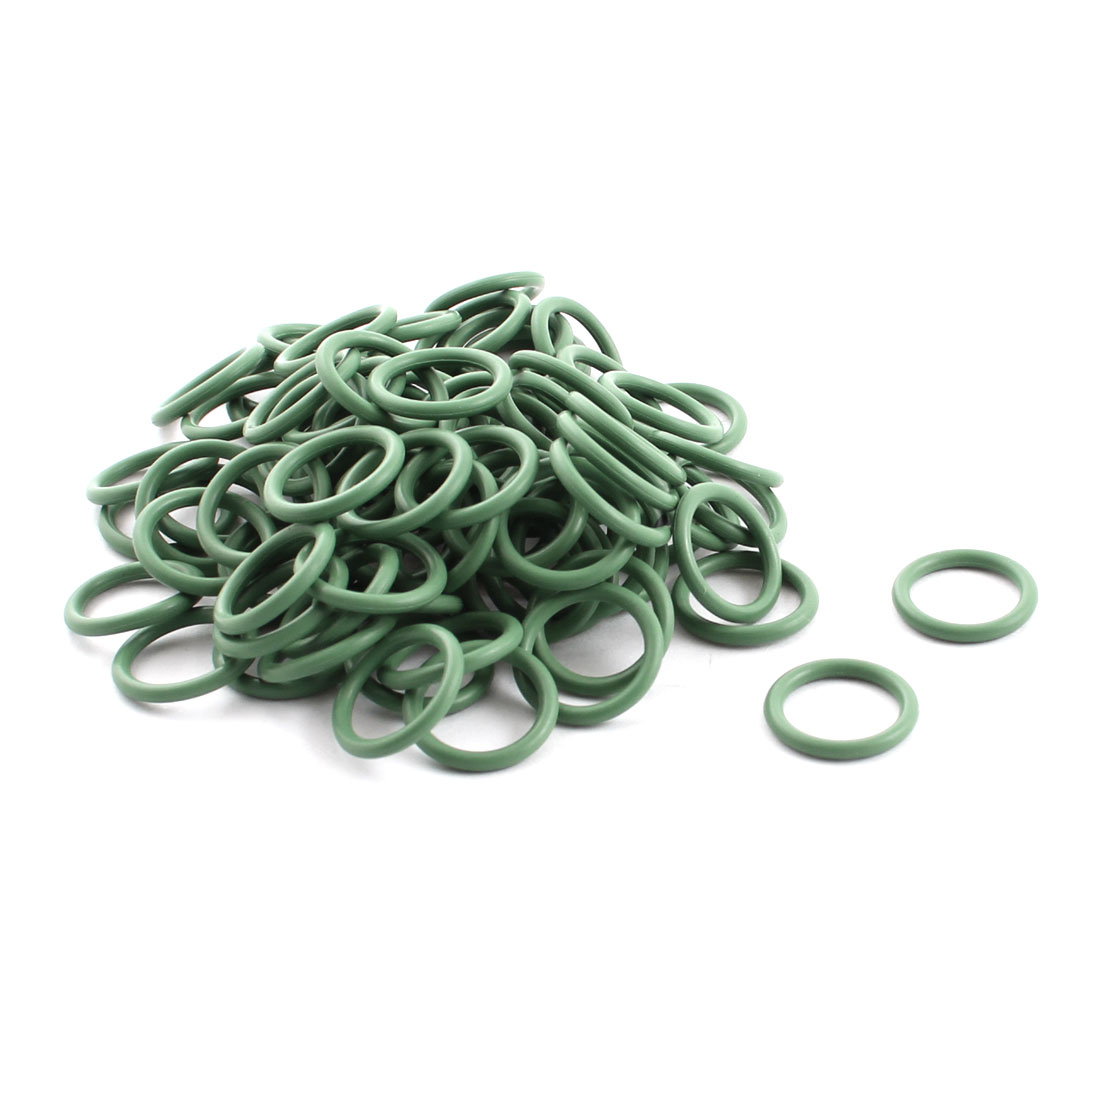 100 Pcs Green Rubber 14mm x 11mm x 1.5mm Oil Seal O Rings Gaskets Washers